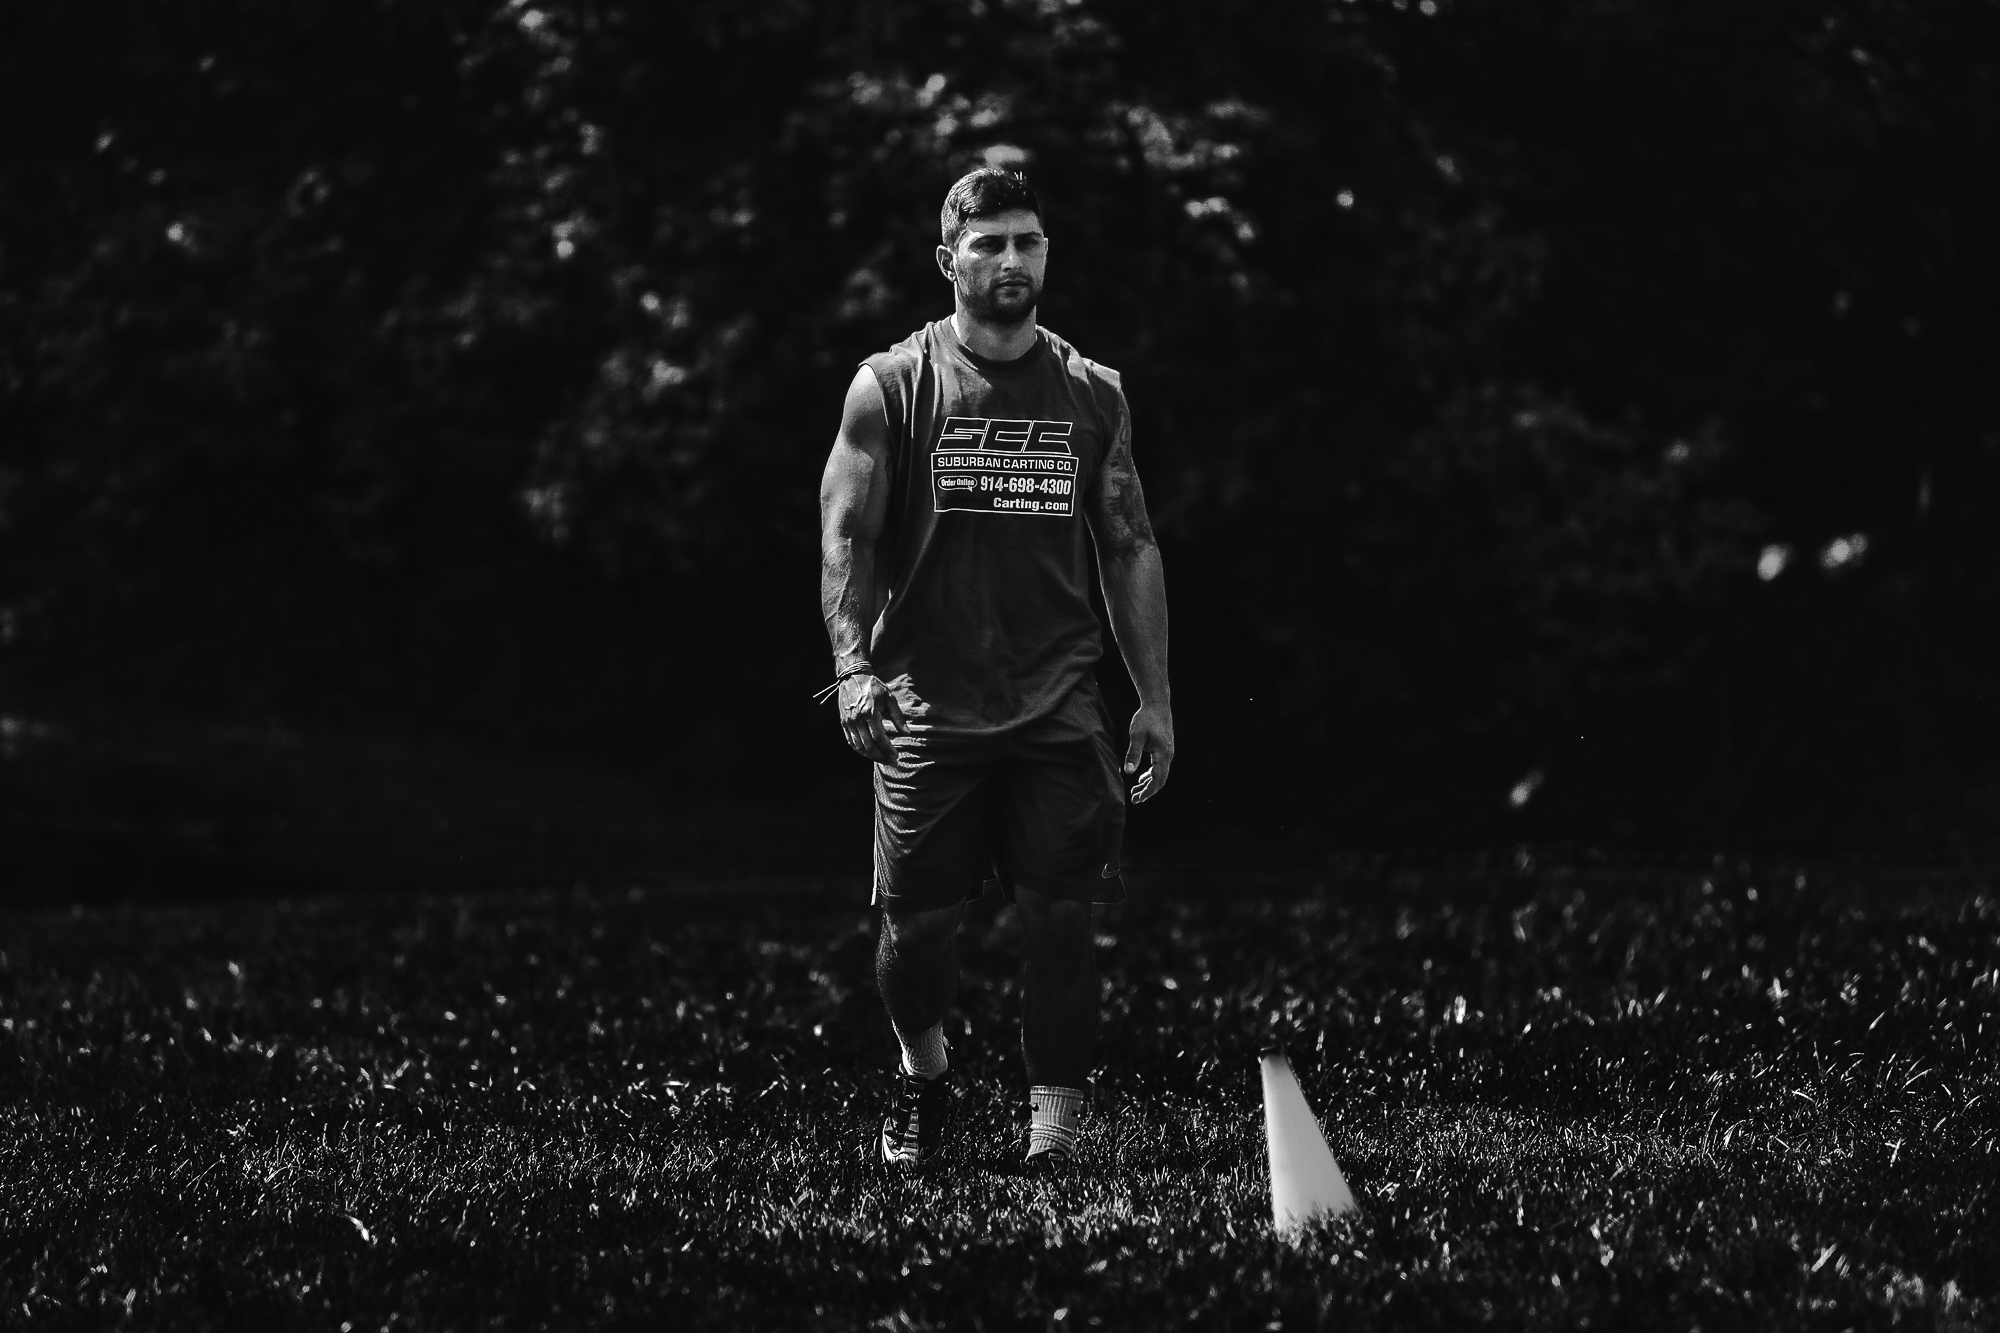 mike-basciano-nywa-oly-weightlifting-coach-new-york-sports-photography